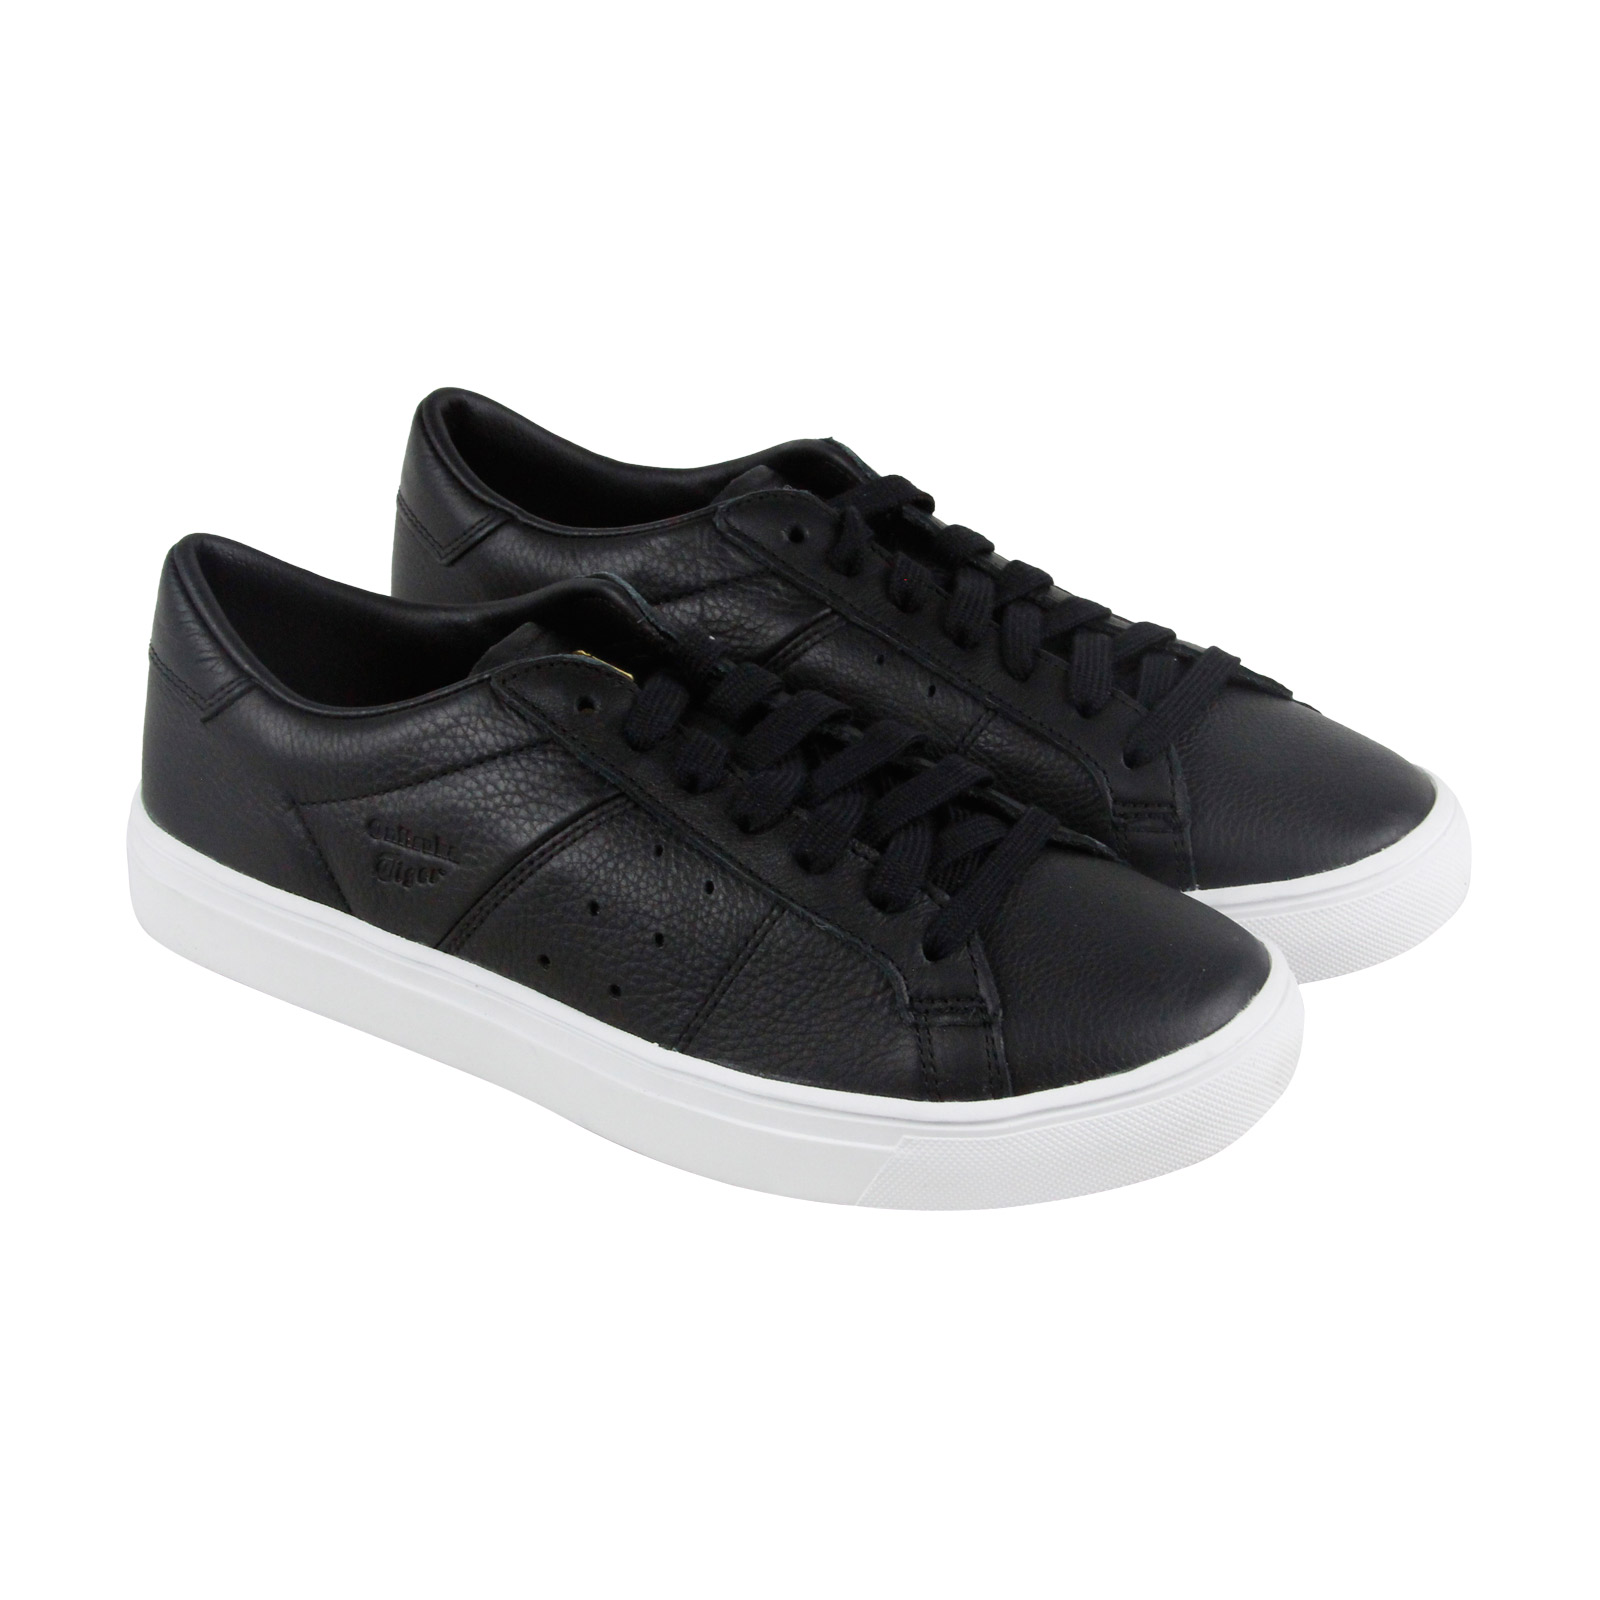 Onitsuka Tiger Lawnship 2.0 Mens Black Leather Lace Up Sneakers Shoes